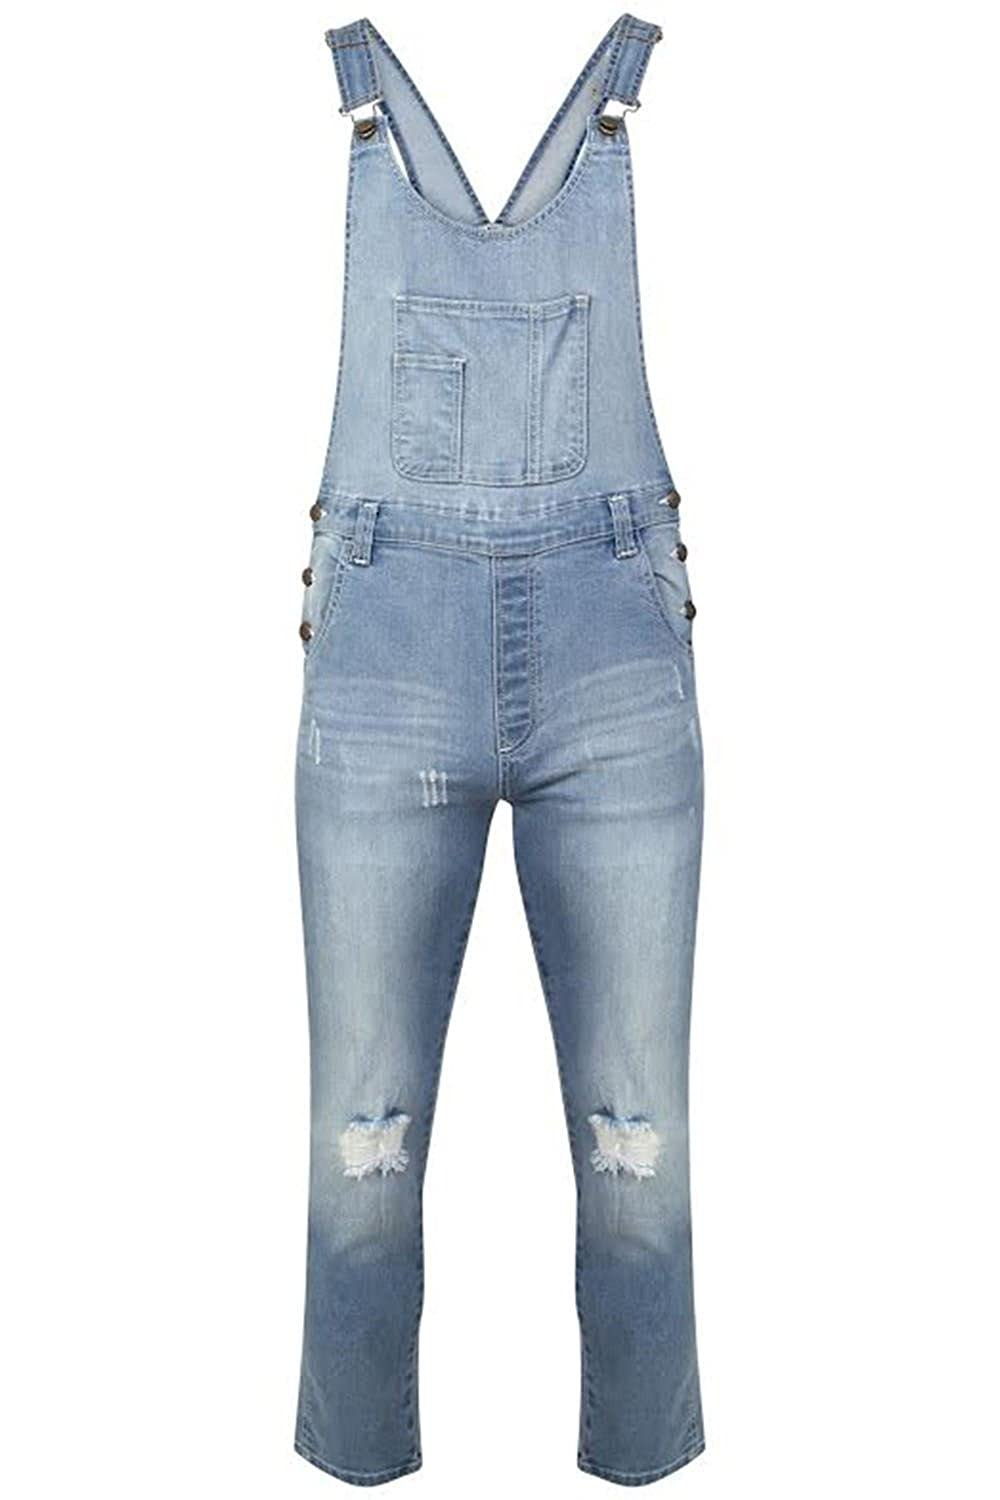 Be Jealous Womens Full Length Pinafore Overall Dungaree Ladies Pockets Casual Celebrity Pure Cotton Denim Jeans Strap Ribbed Sleeveless Playsuit Jumpsuit